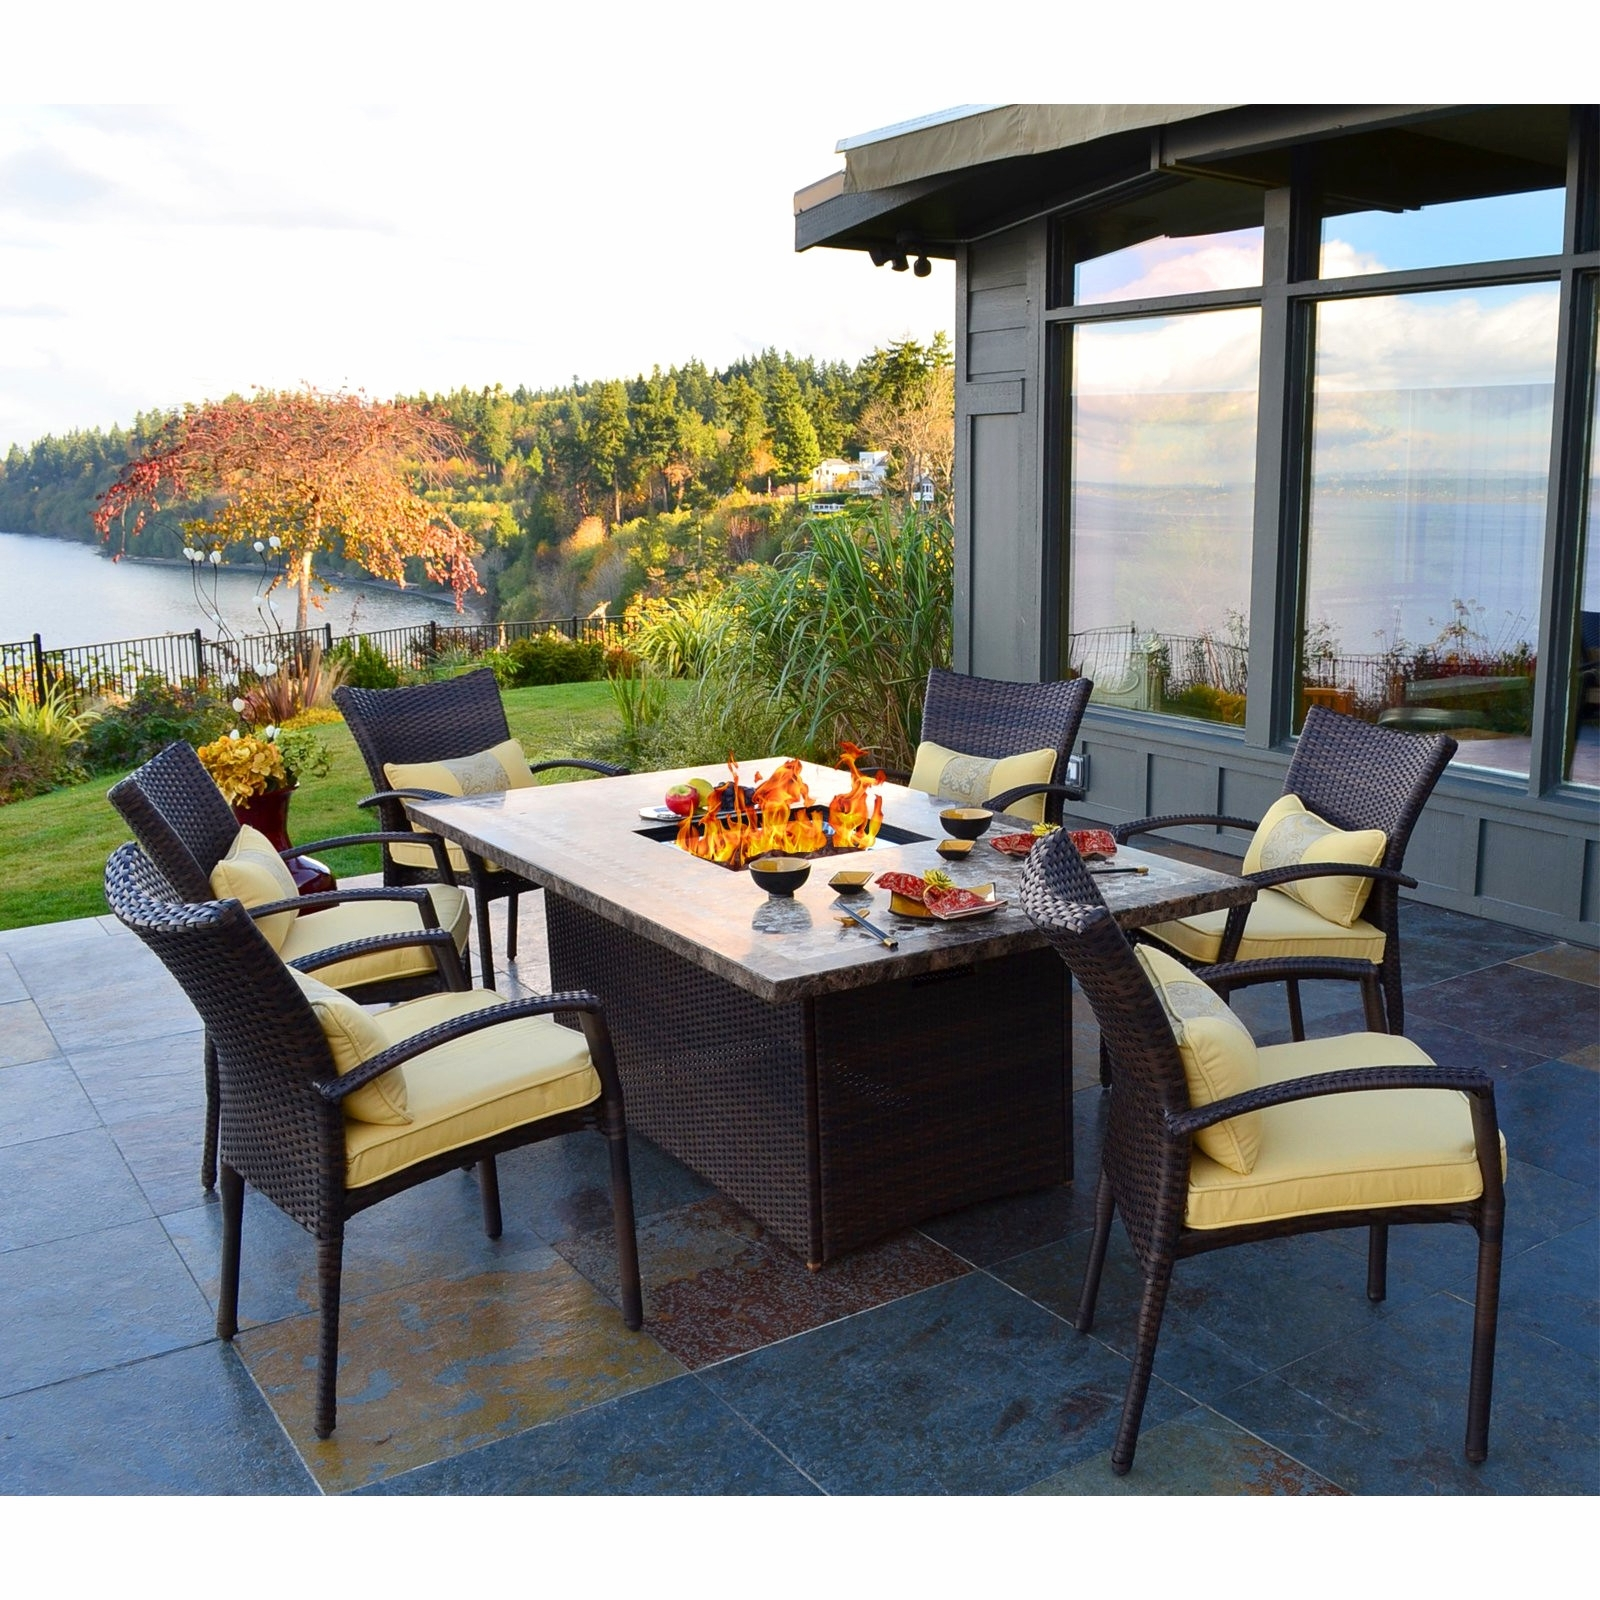 Well Known Patio Conversation Sets With Fire Table For Patio Dining Table With Fire Pit Lovely Conversation Sets Fire Pit (View 10 of 15)